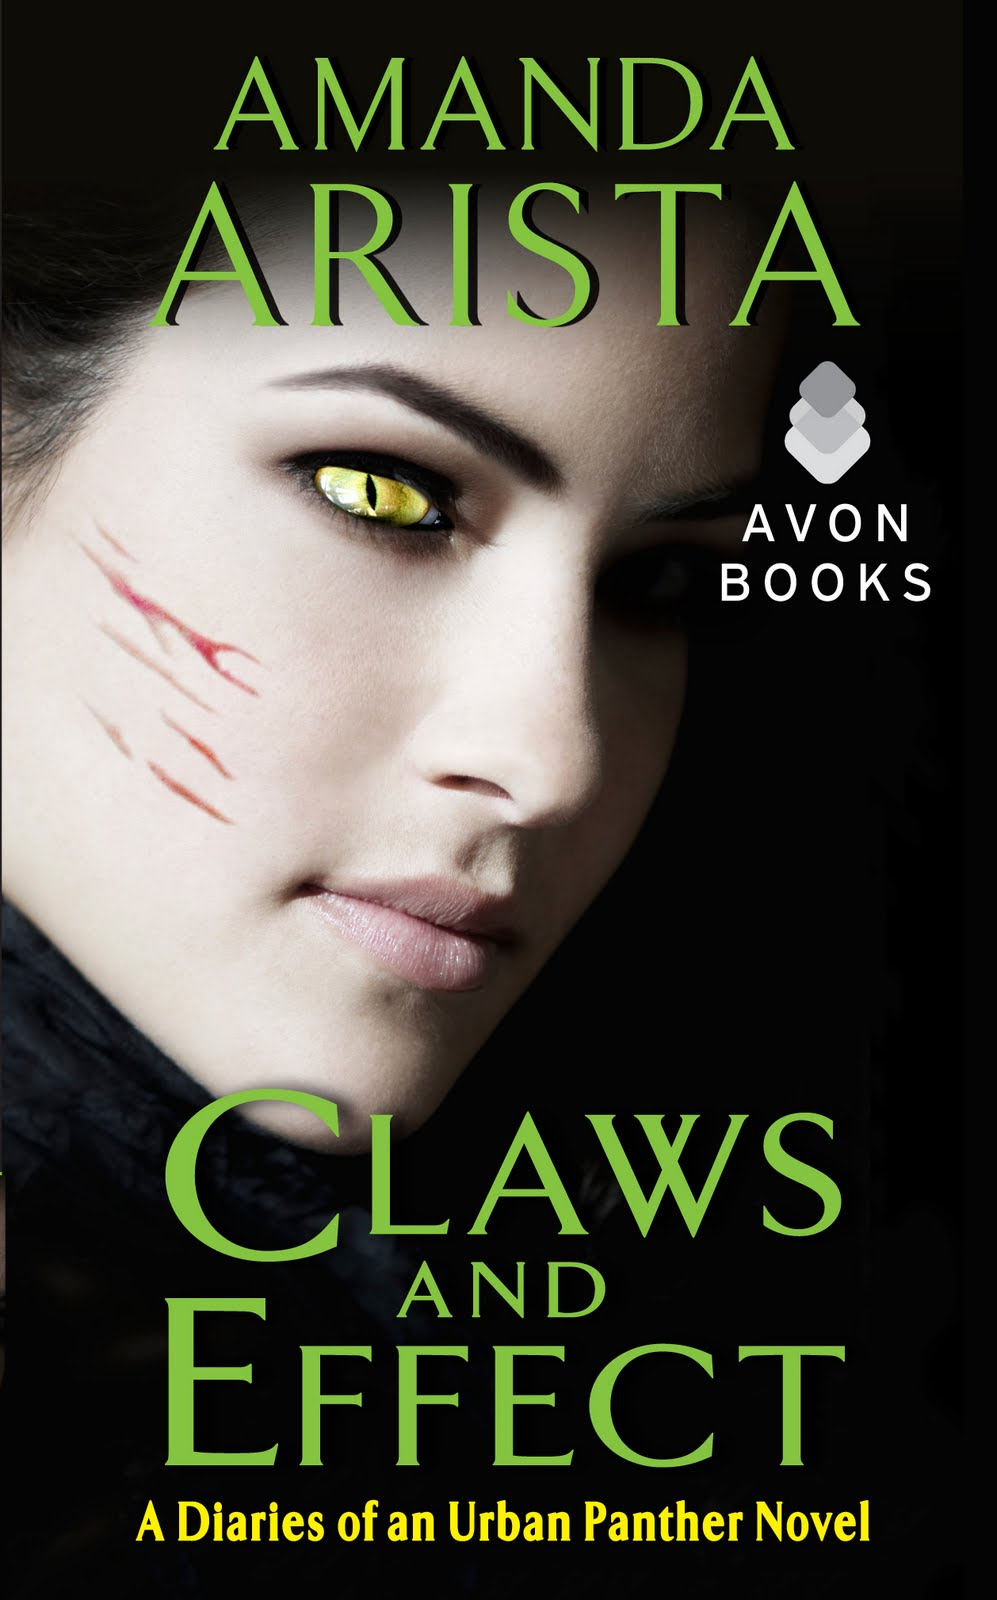 GoddessFish Tour Review: Claws And Effect by Amanda Arista